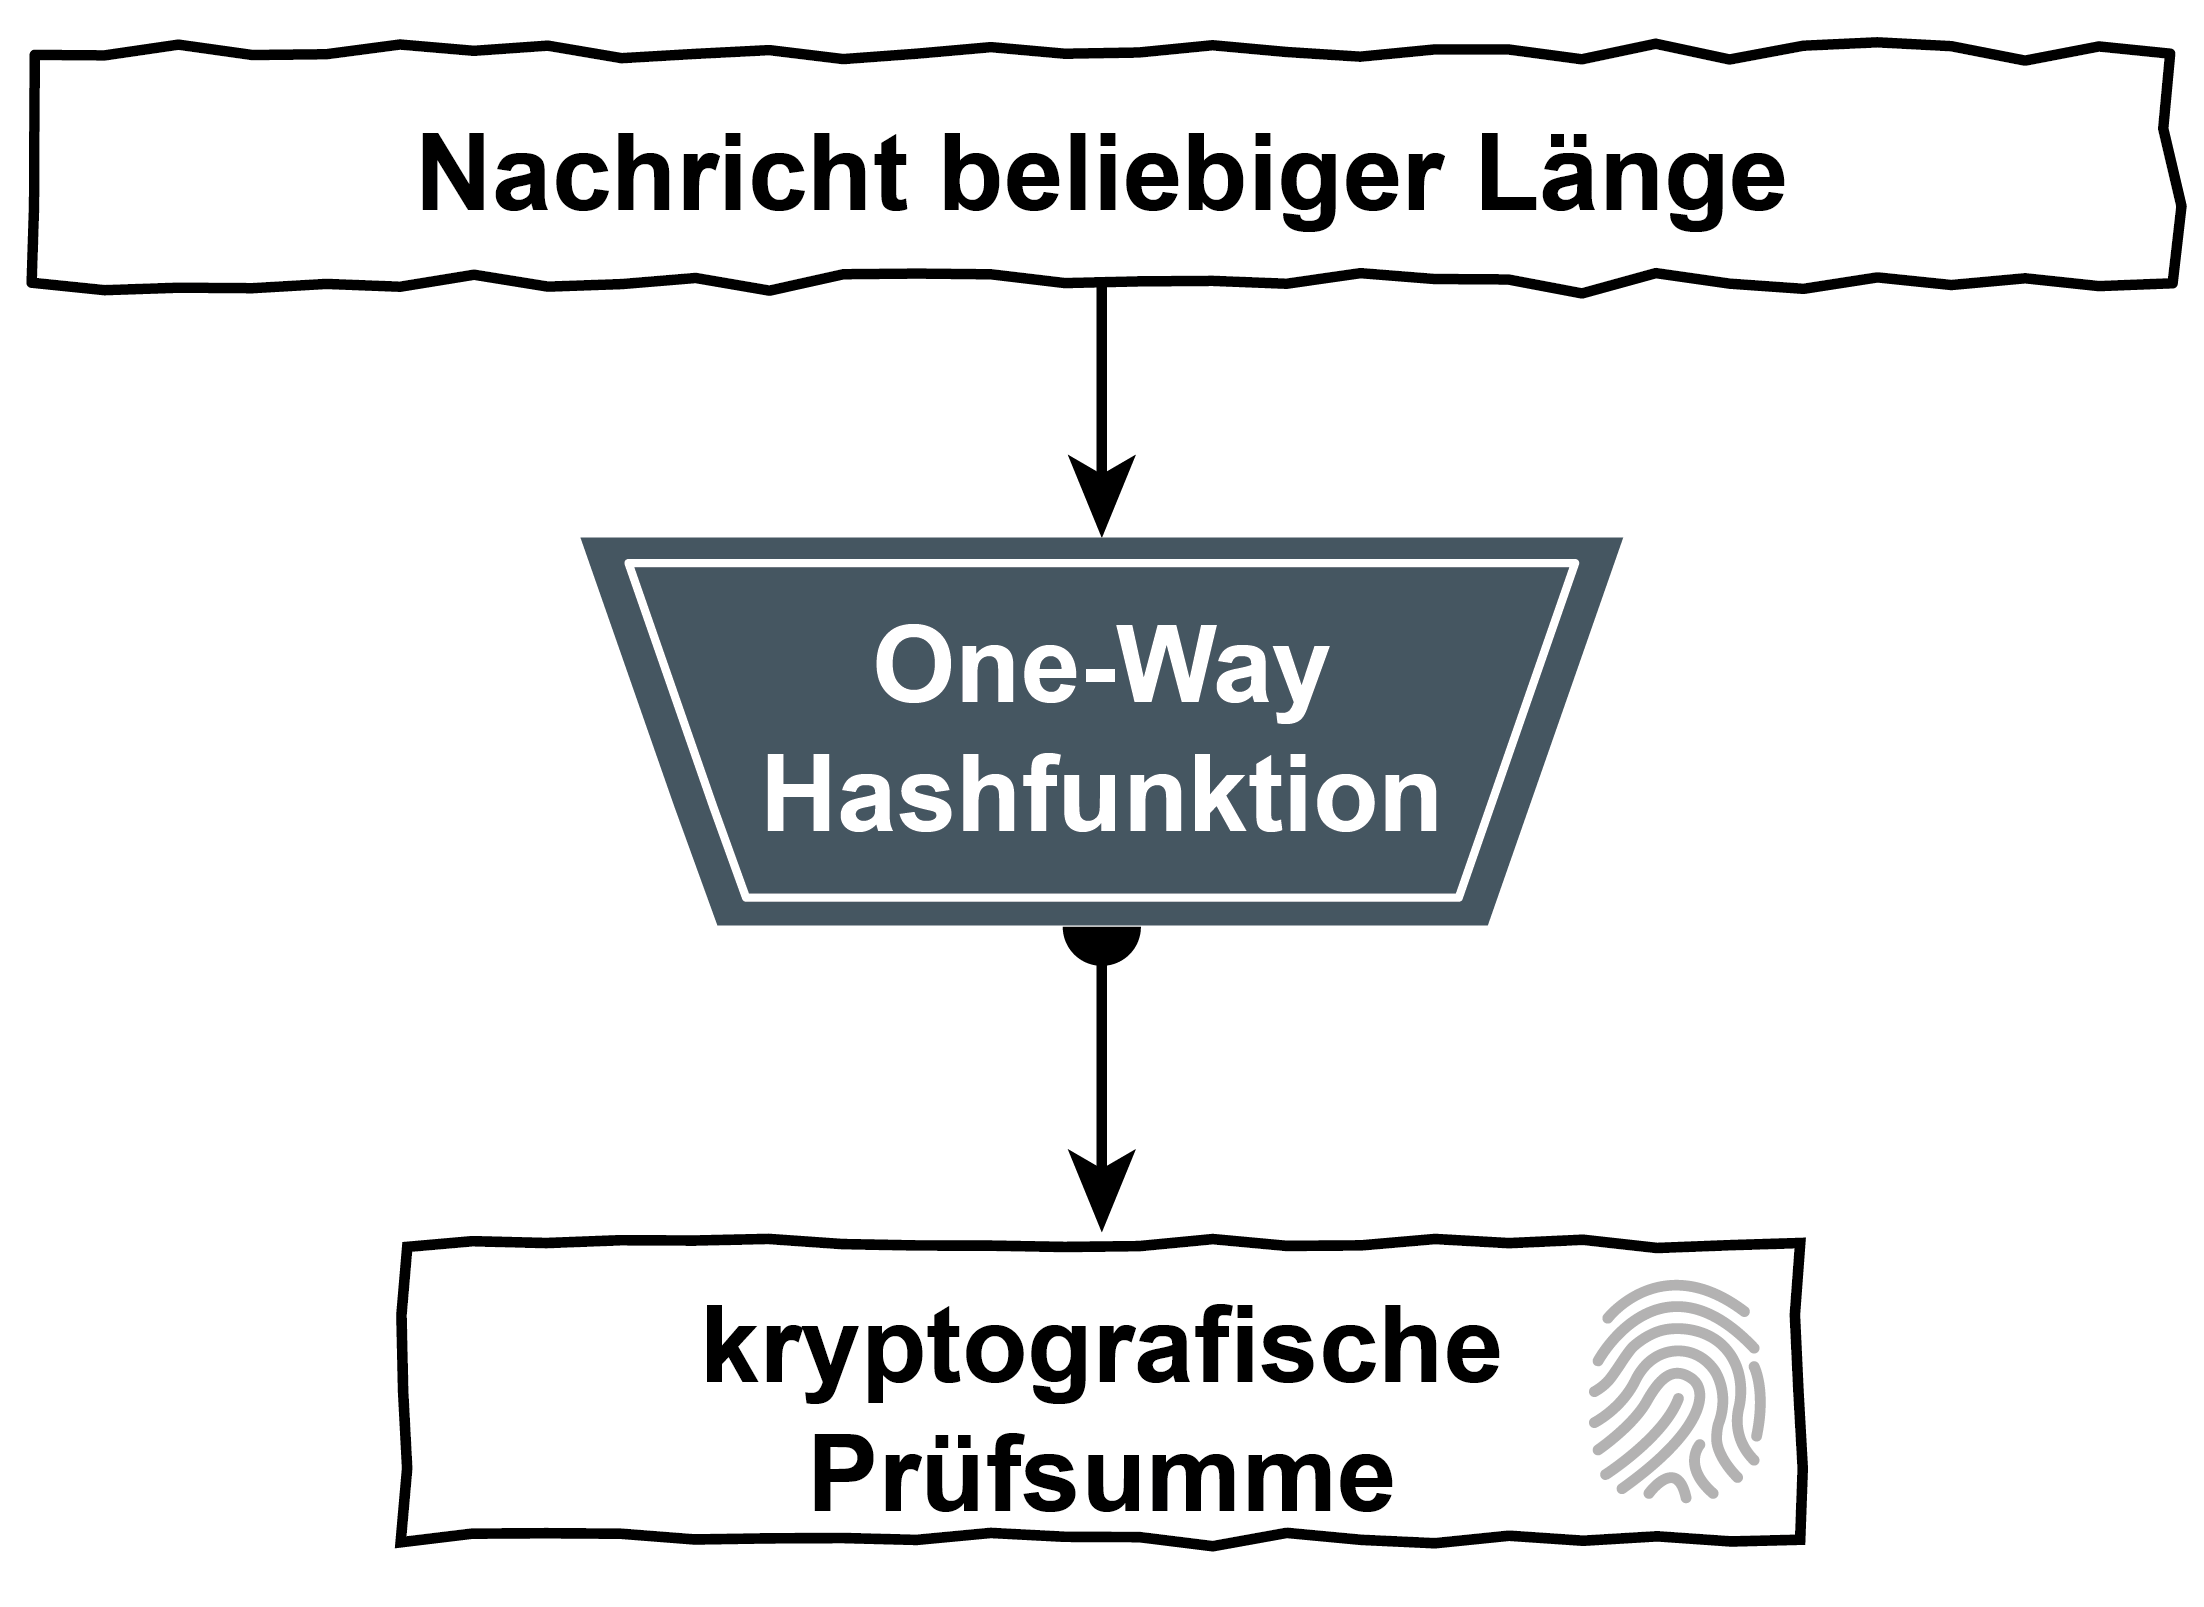 One-Way-Hashfunktionen - kryptografische Hashfunktionen - Glossar Cyber-Sicherheit - Prof. Norbert Pohlmann